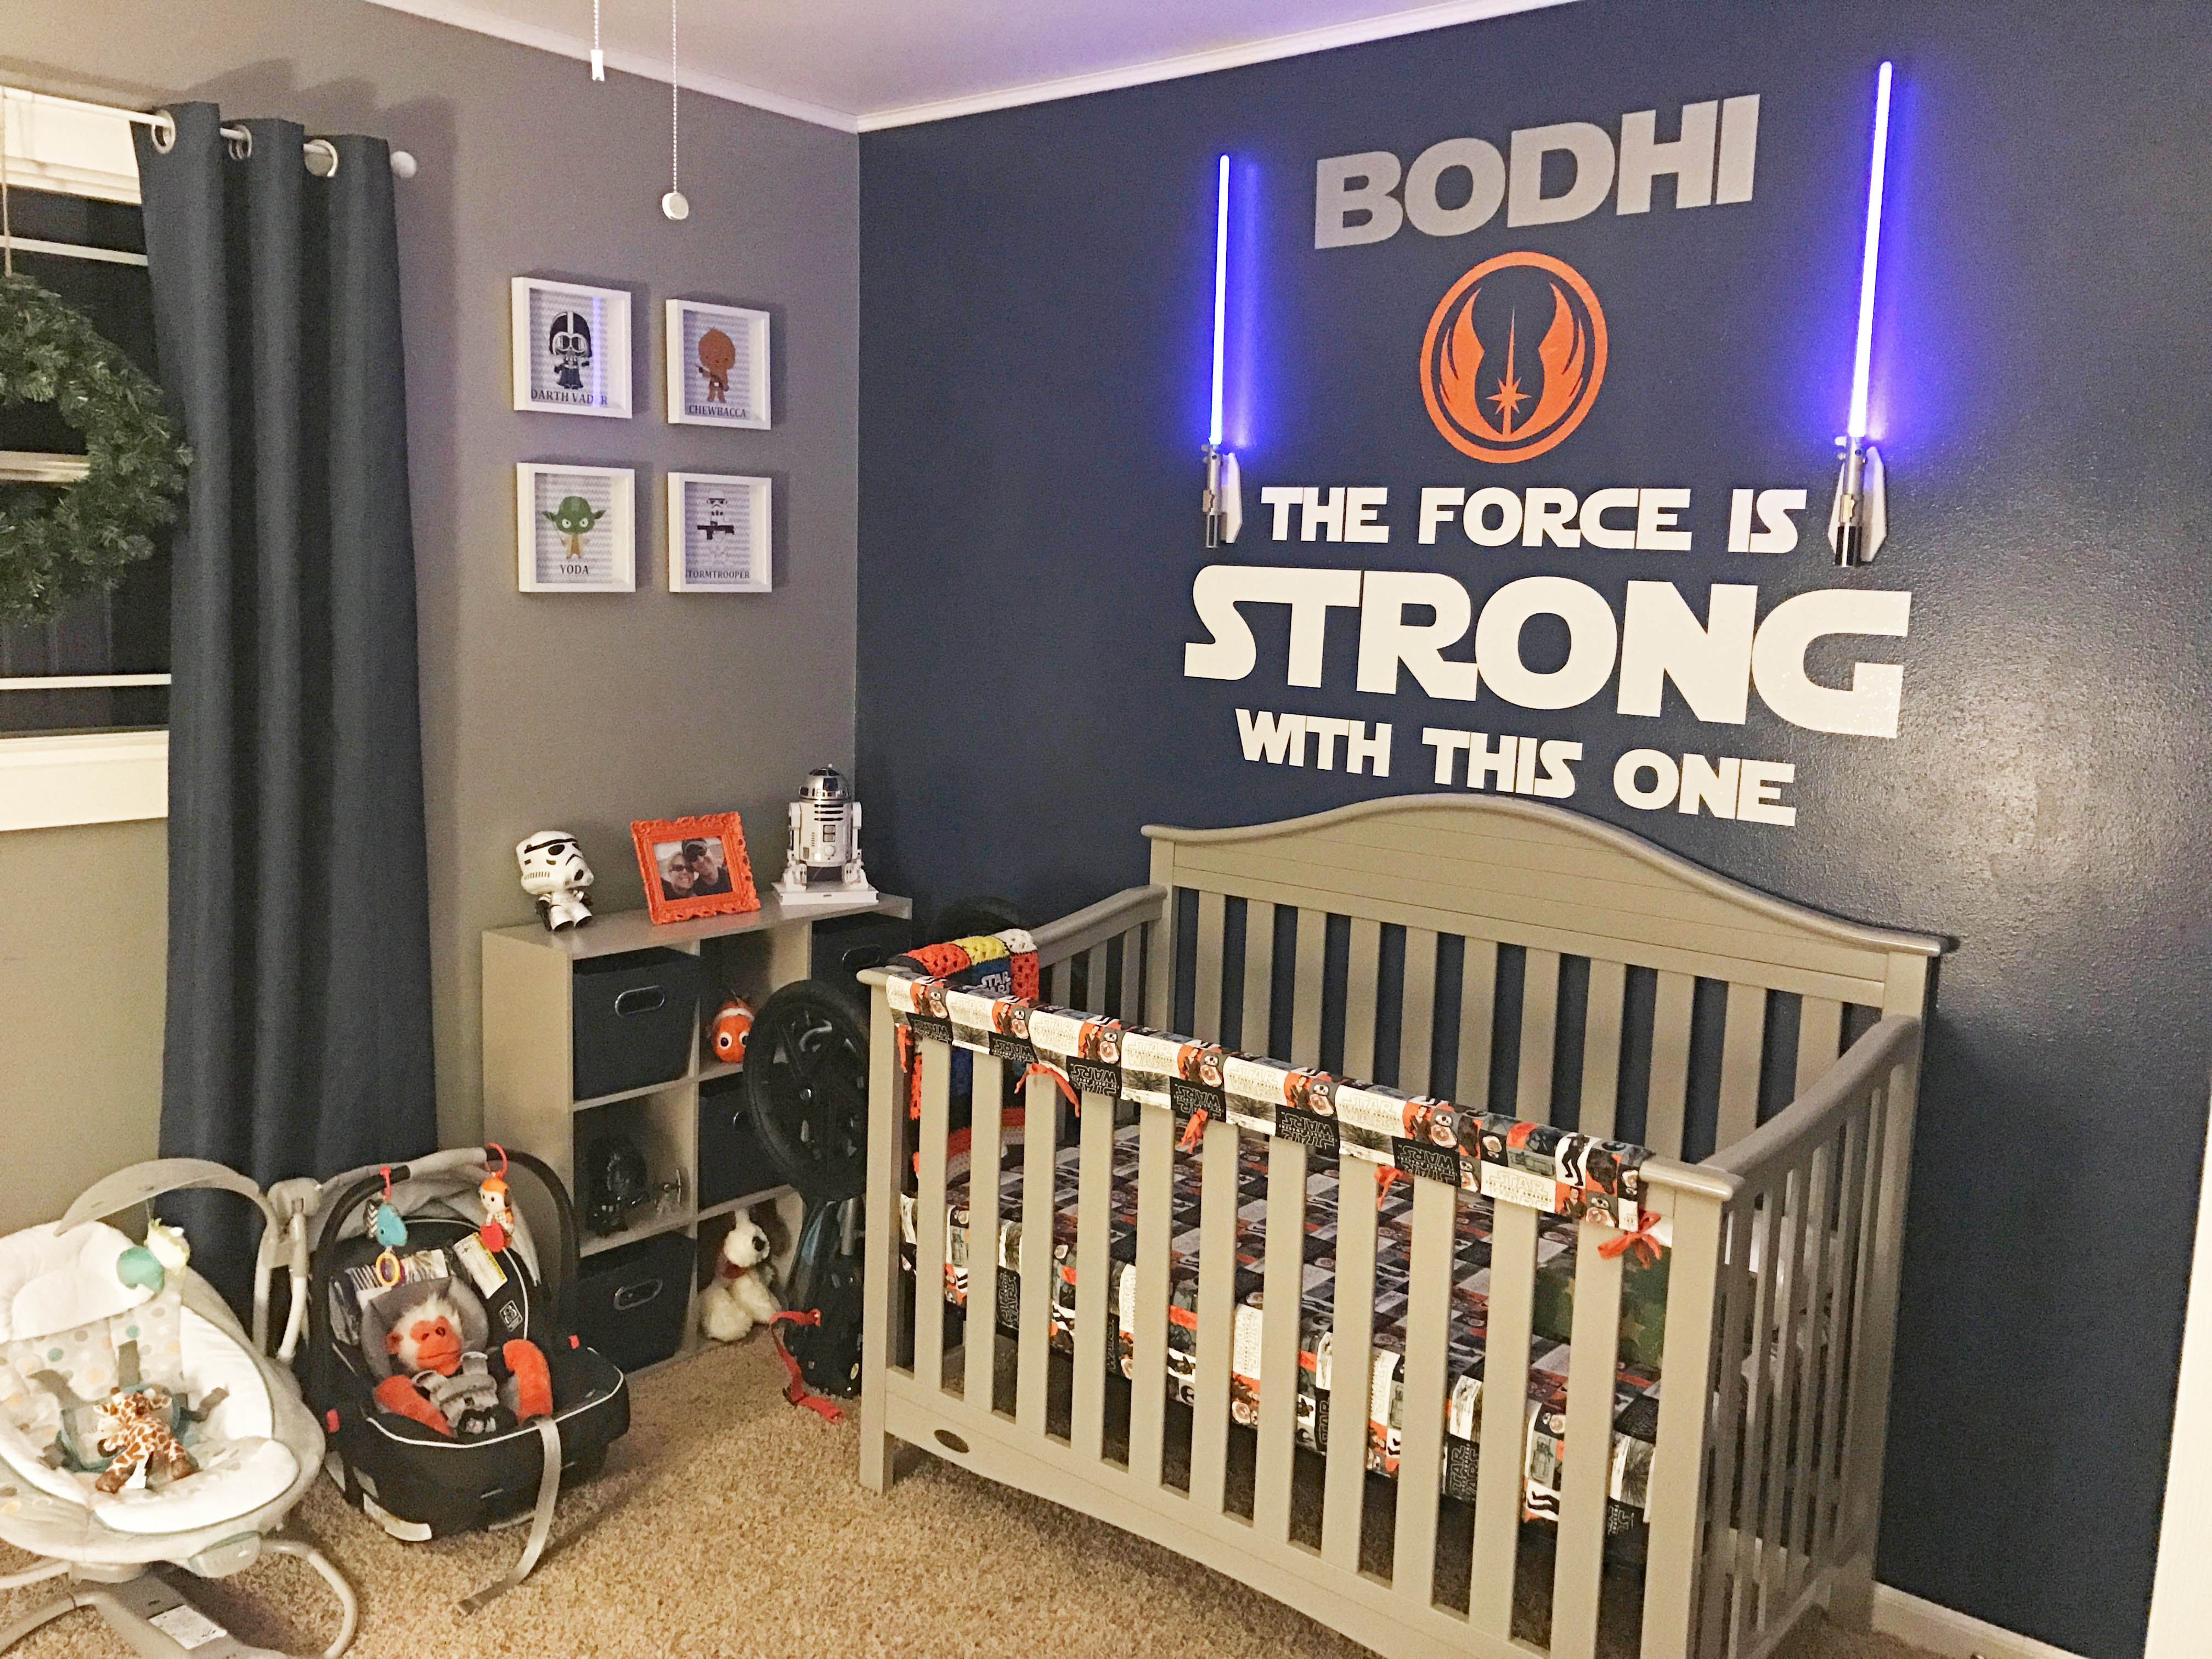 Getting your toddler set up with a nice Star Wars bedroom is the best way to make an impression.